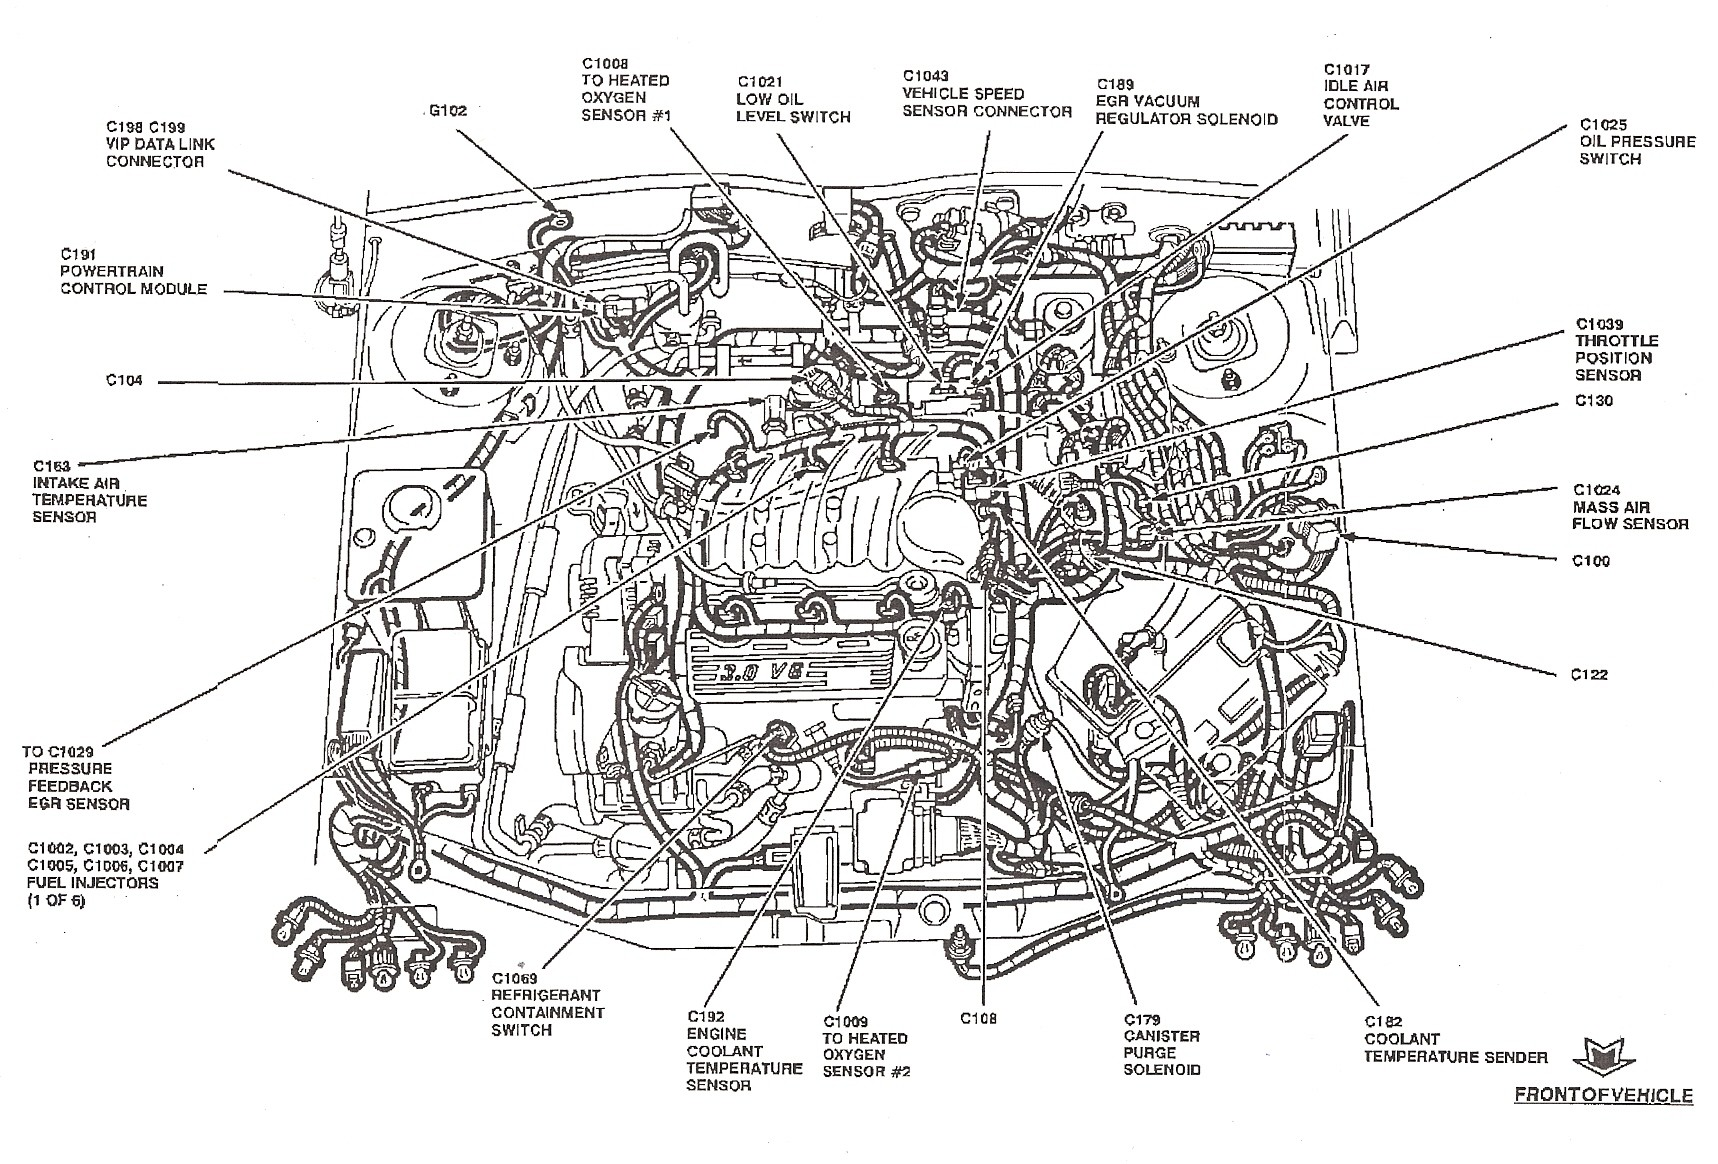 hight resolution of 2001 ford focus wiring diagram schema wiring diagram ford focus engine diagram to download 2003 ford focus engine diagram